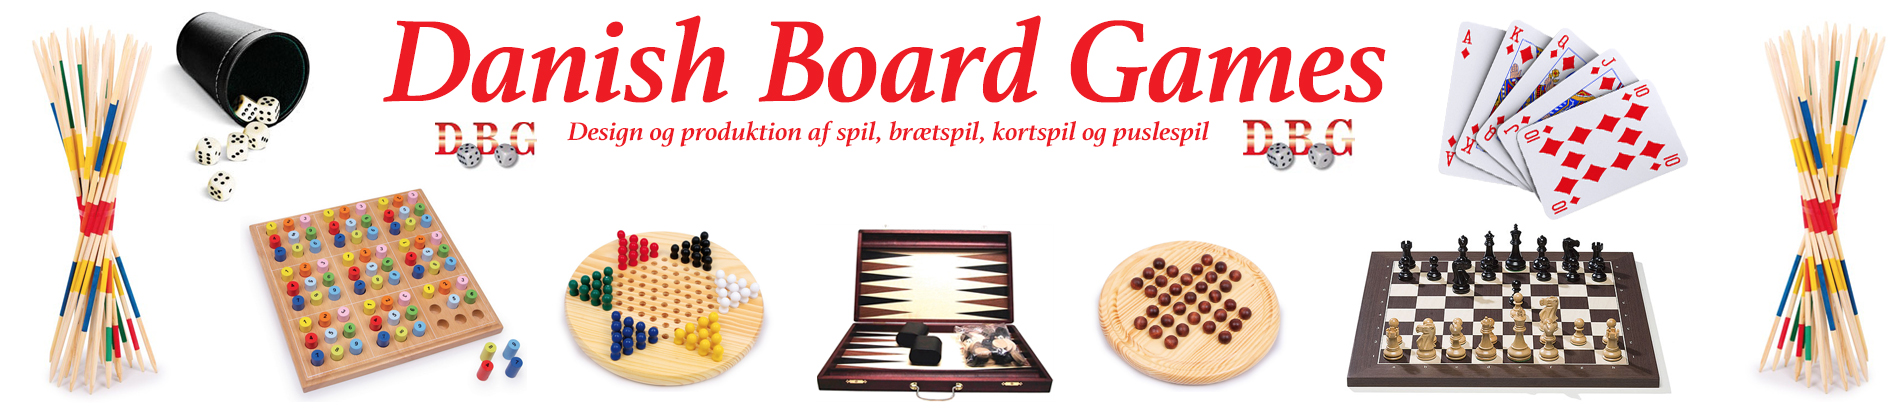 Danish Board Games